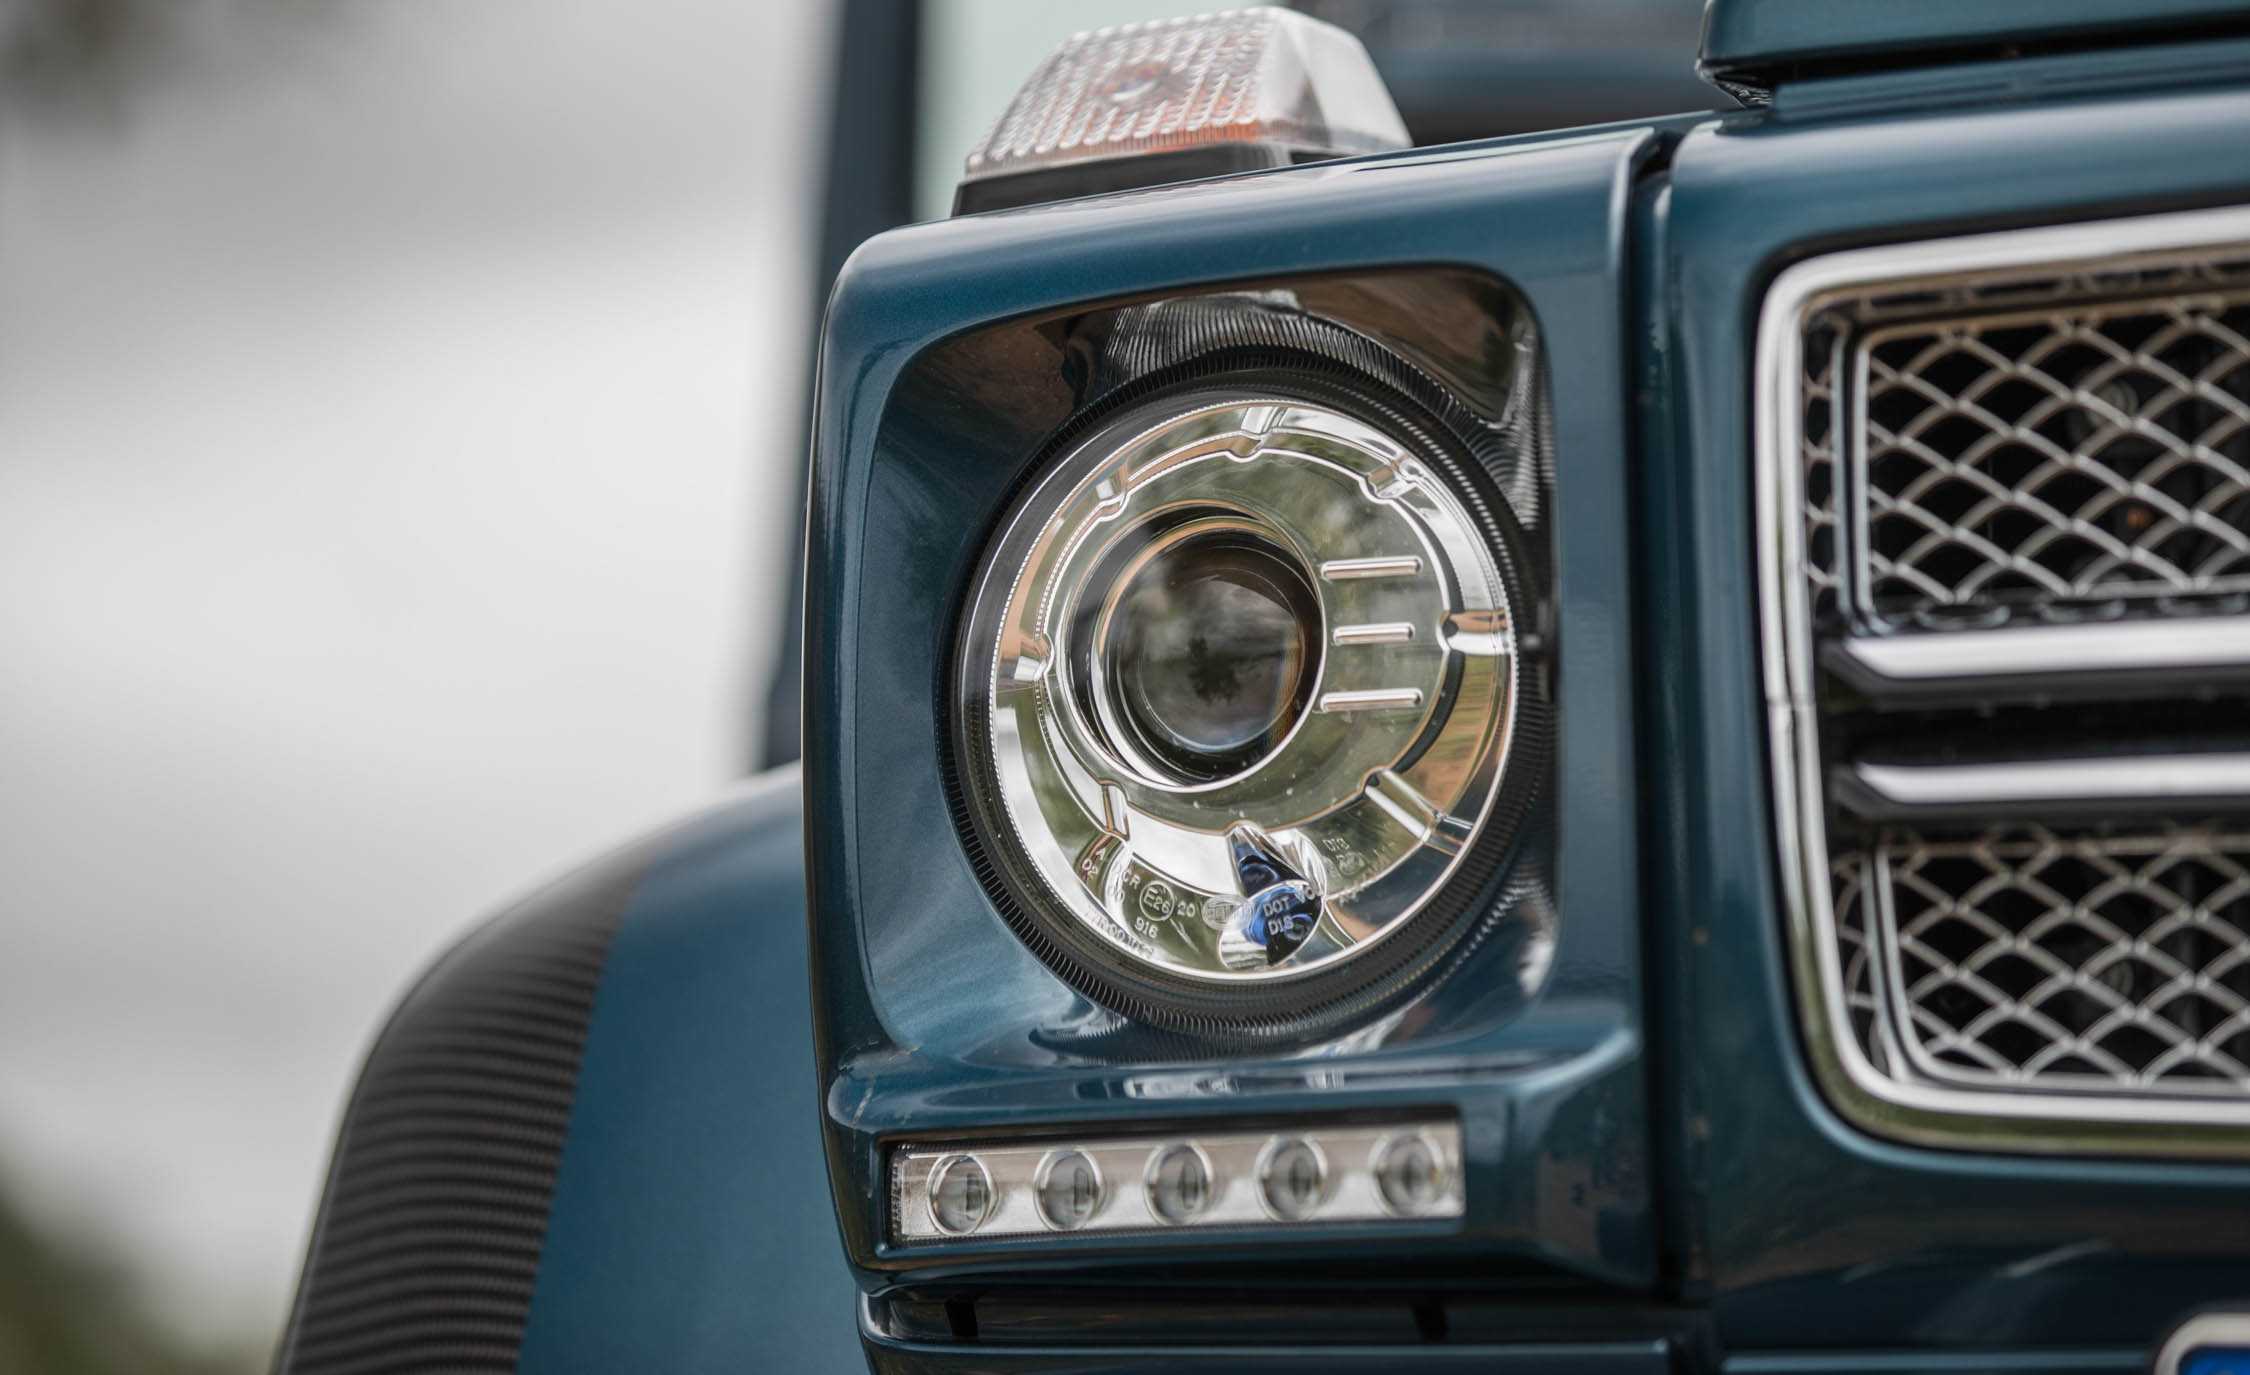 2018 Mercedes Maybach G650 Landaulet Exterior View Headlight (Photo 12 of 52)